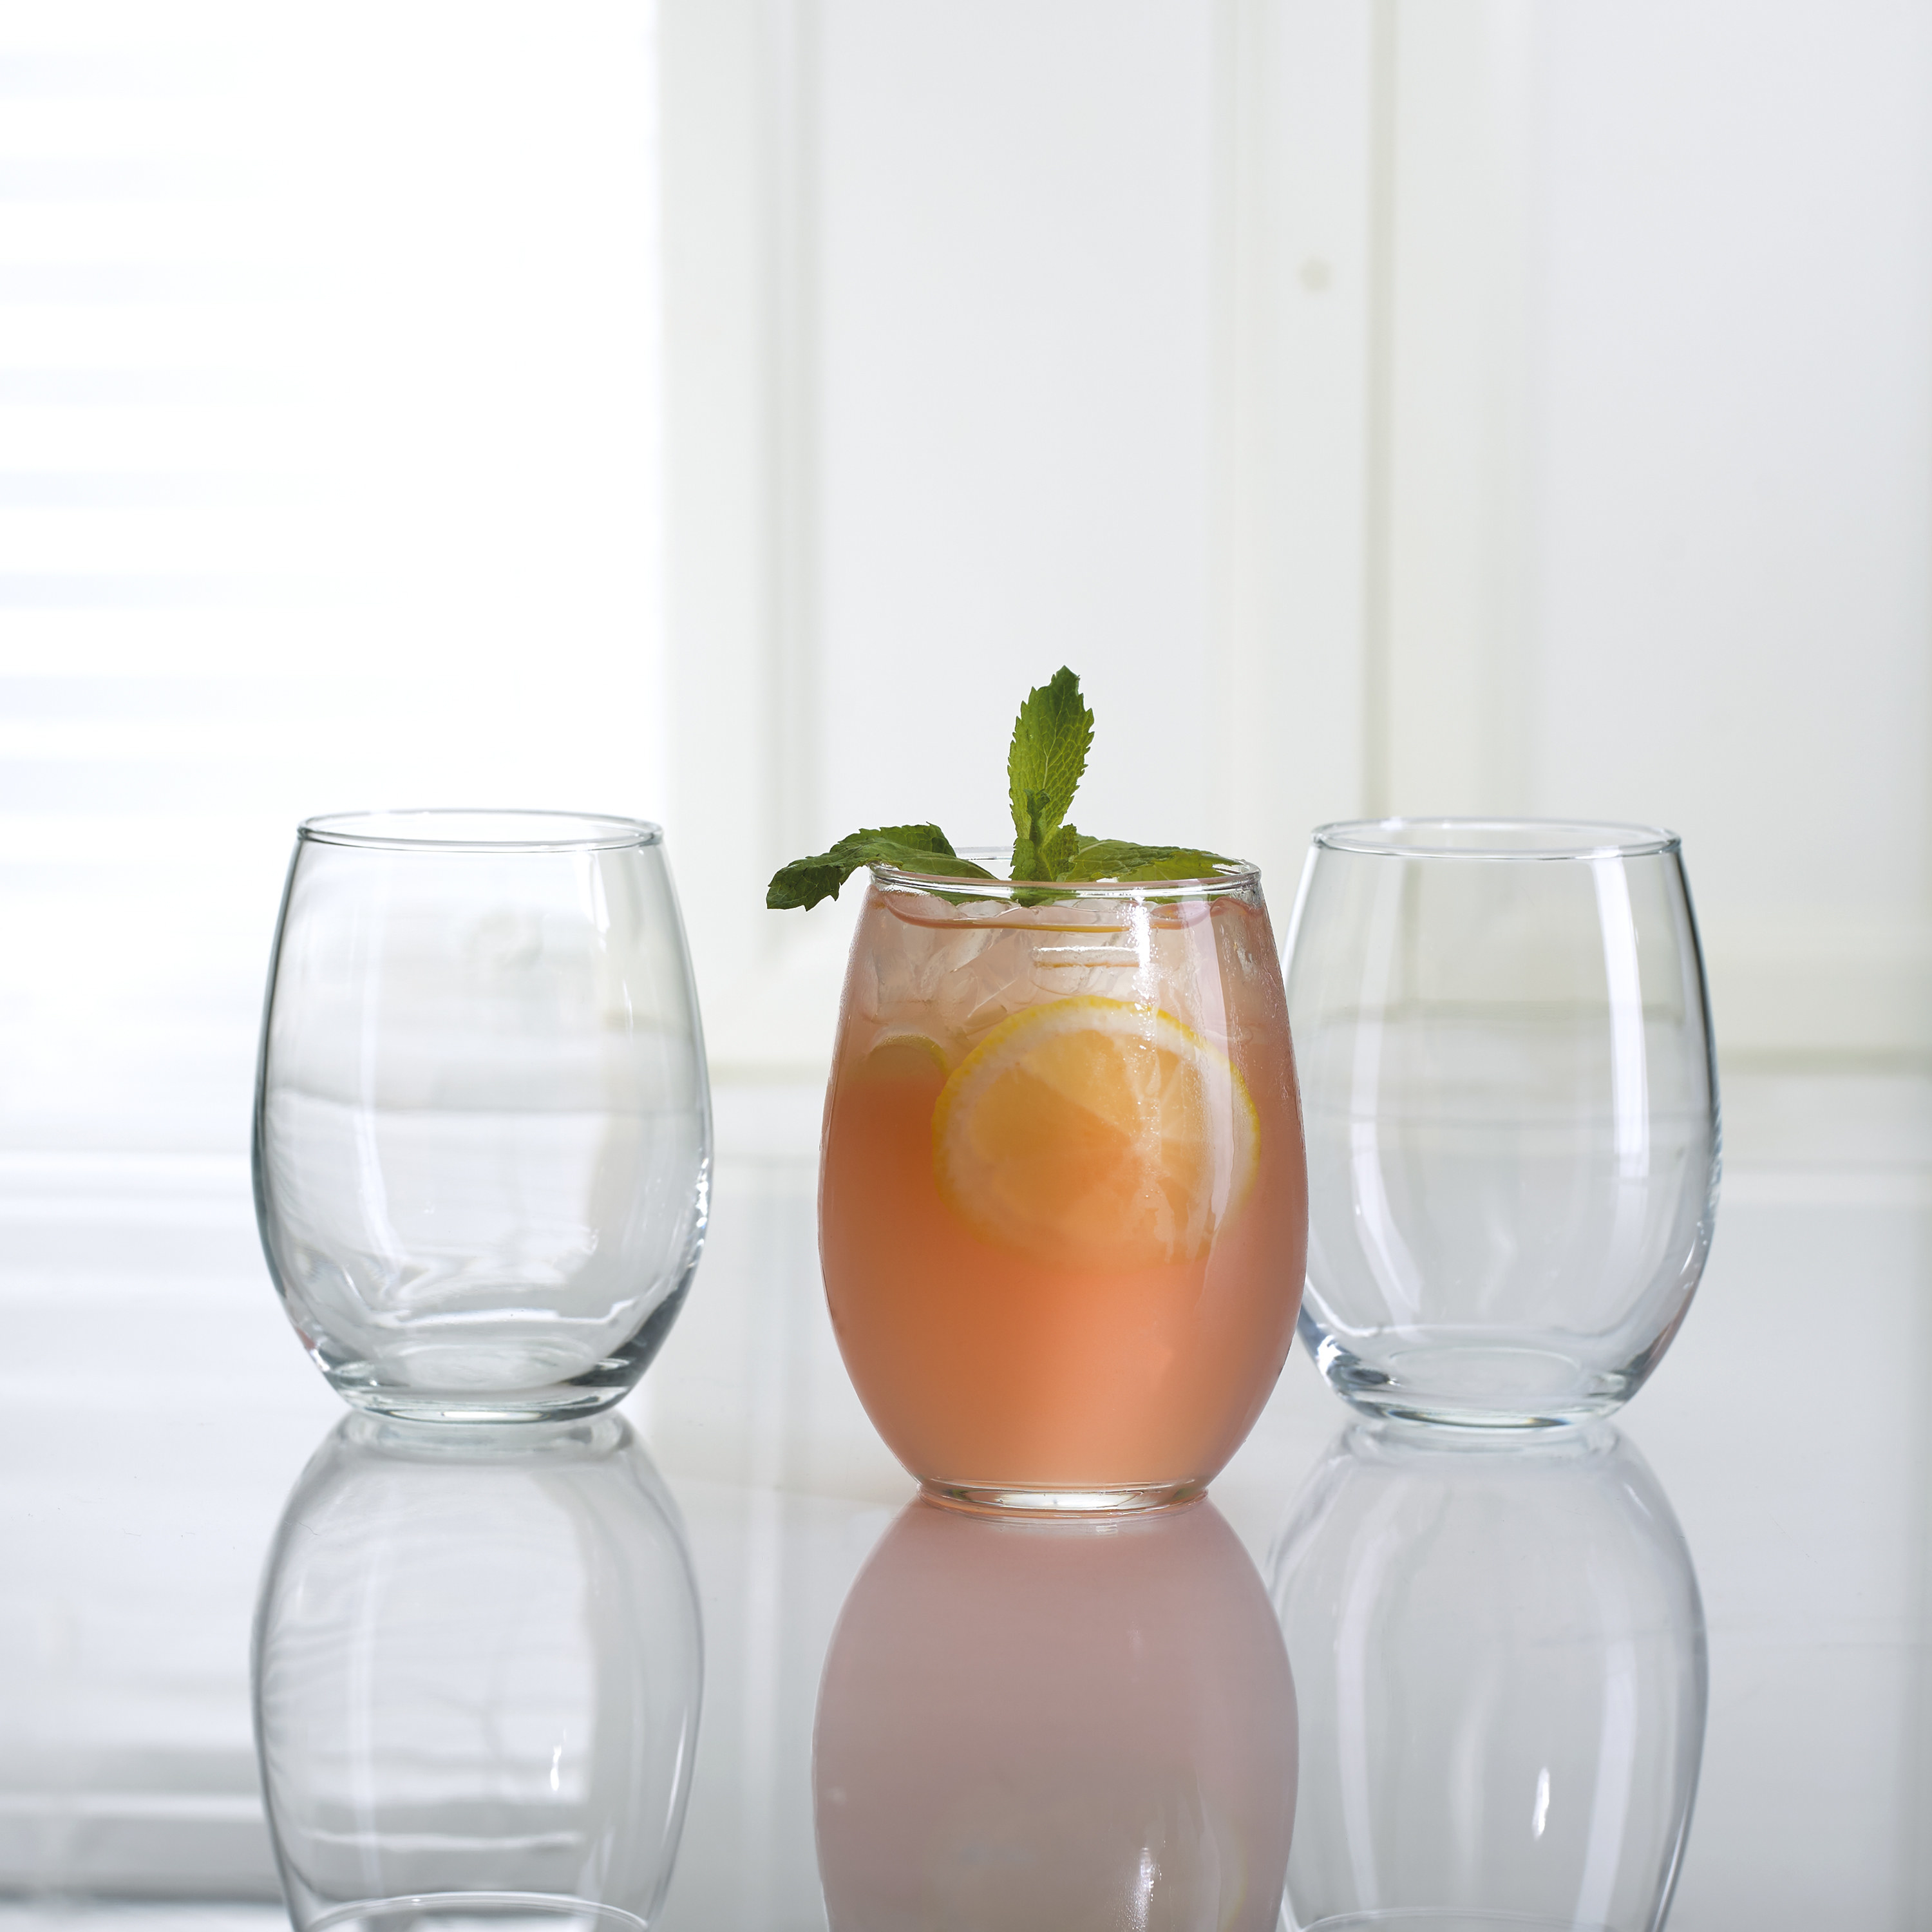 three stemless wine glasses on a table, one with a pink beverage